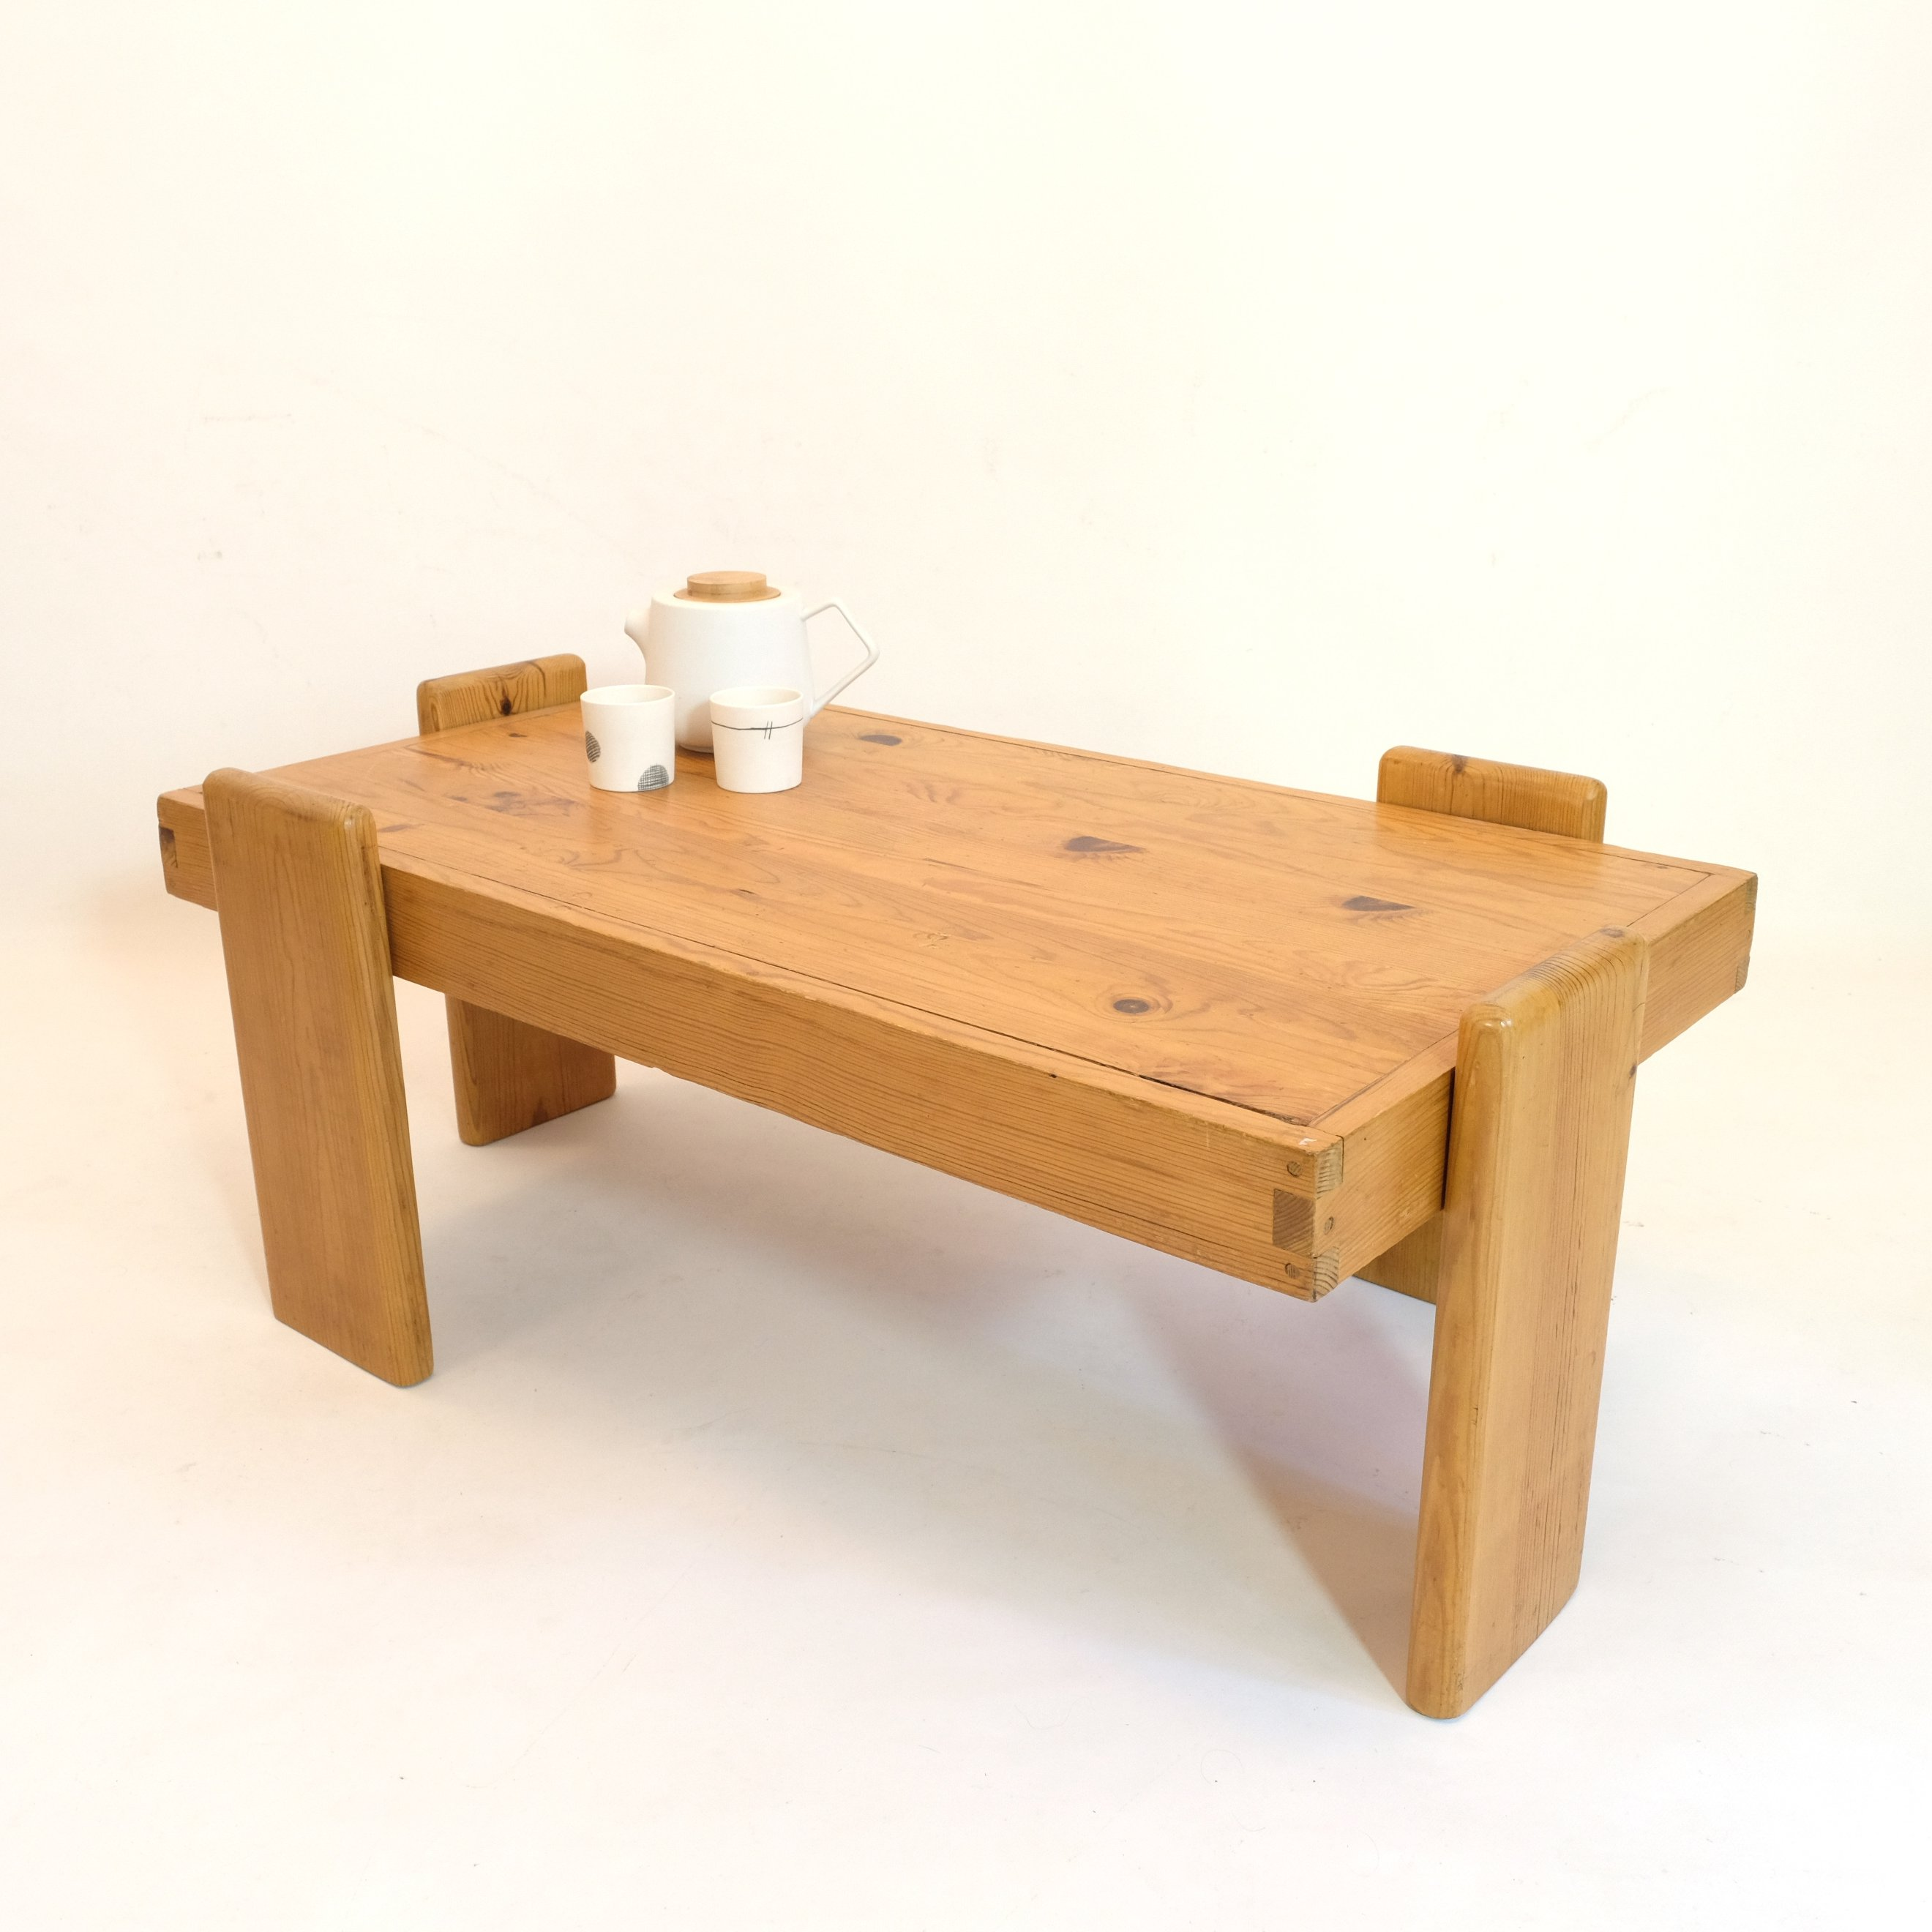 Solid Pine Wood Coffee Table 1970s 137689